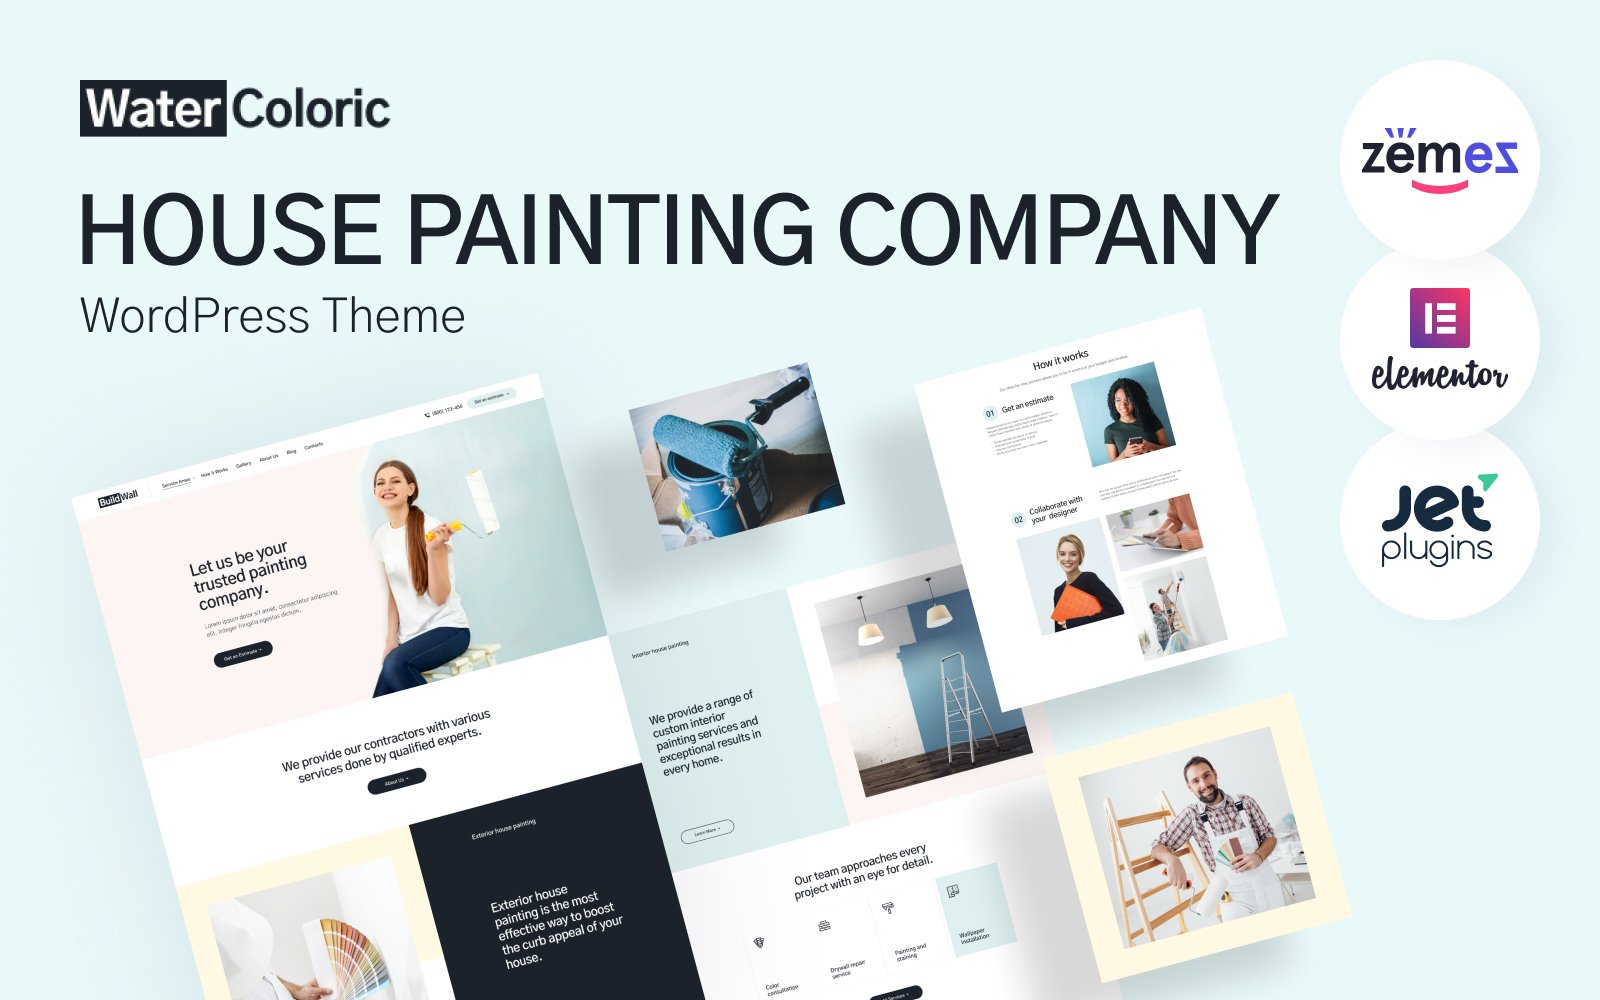 WaterColoric - House Painting Company WordPress Theme